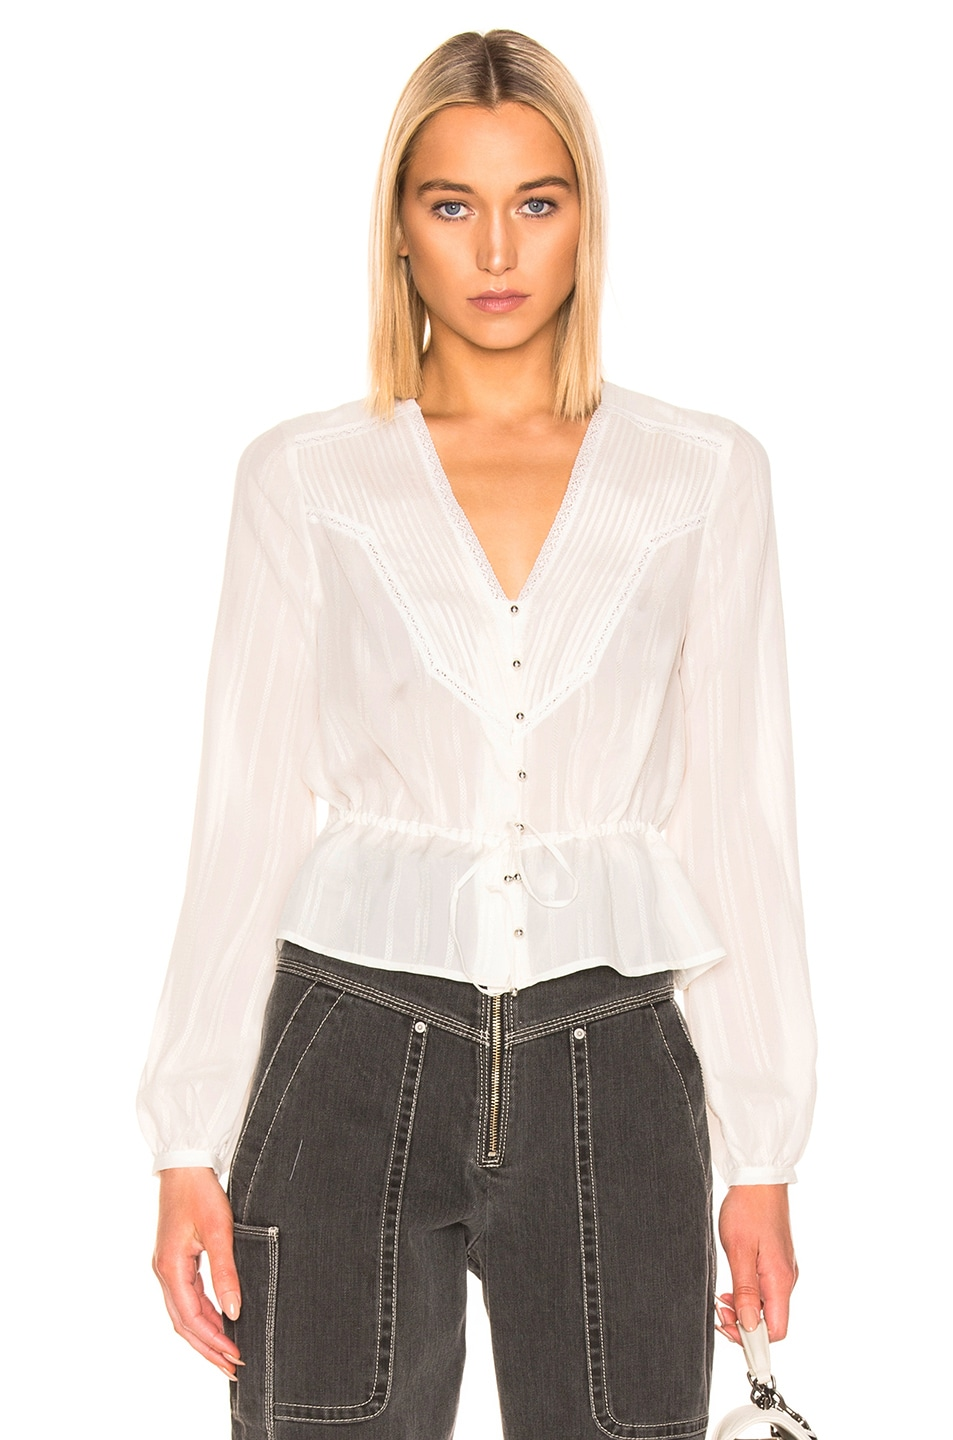 08a0e2b36a203d Image 1 of Veronica Beard Phoebe Blouse in White